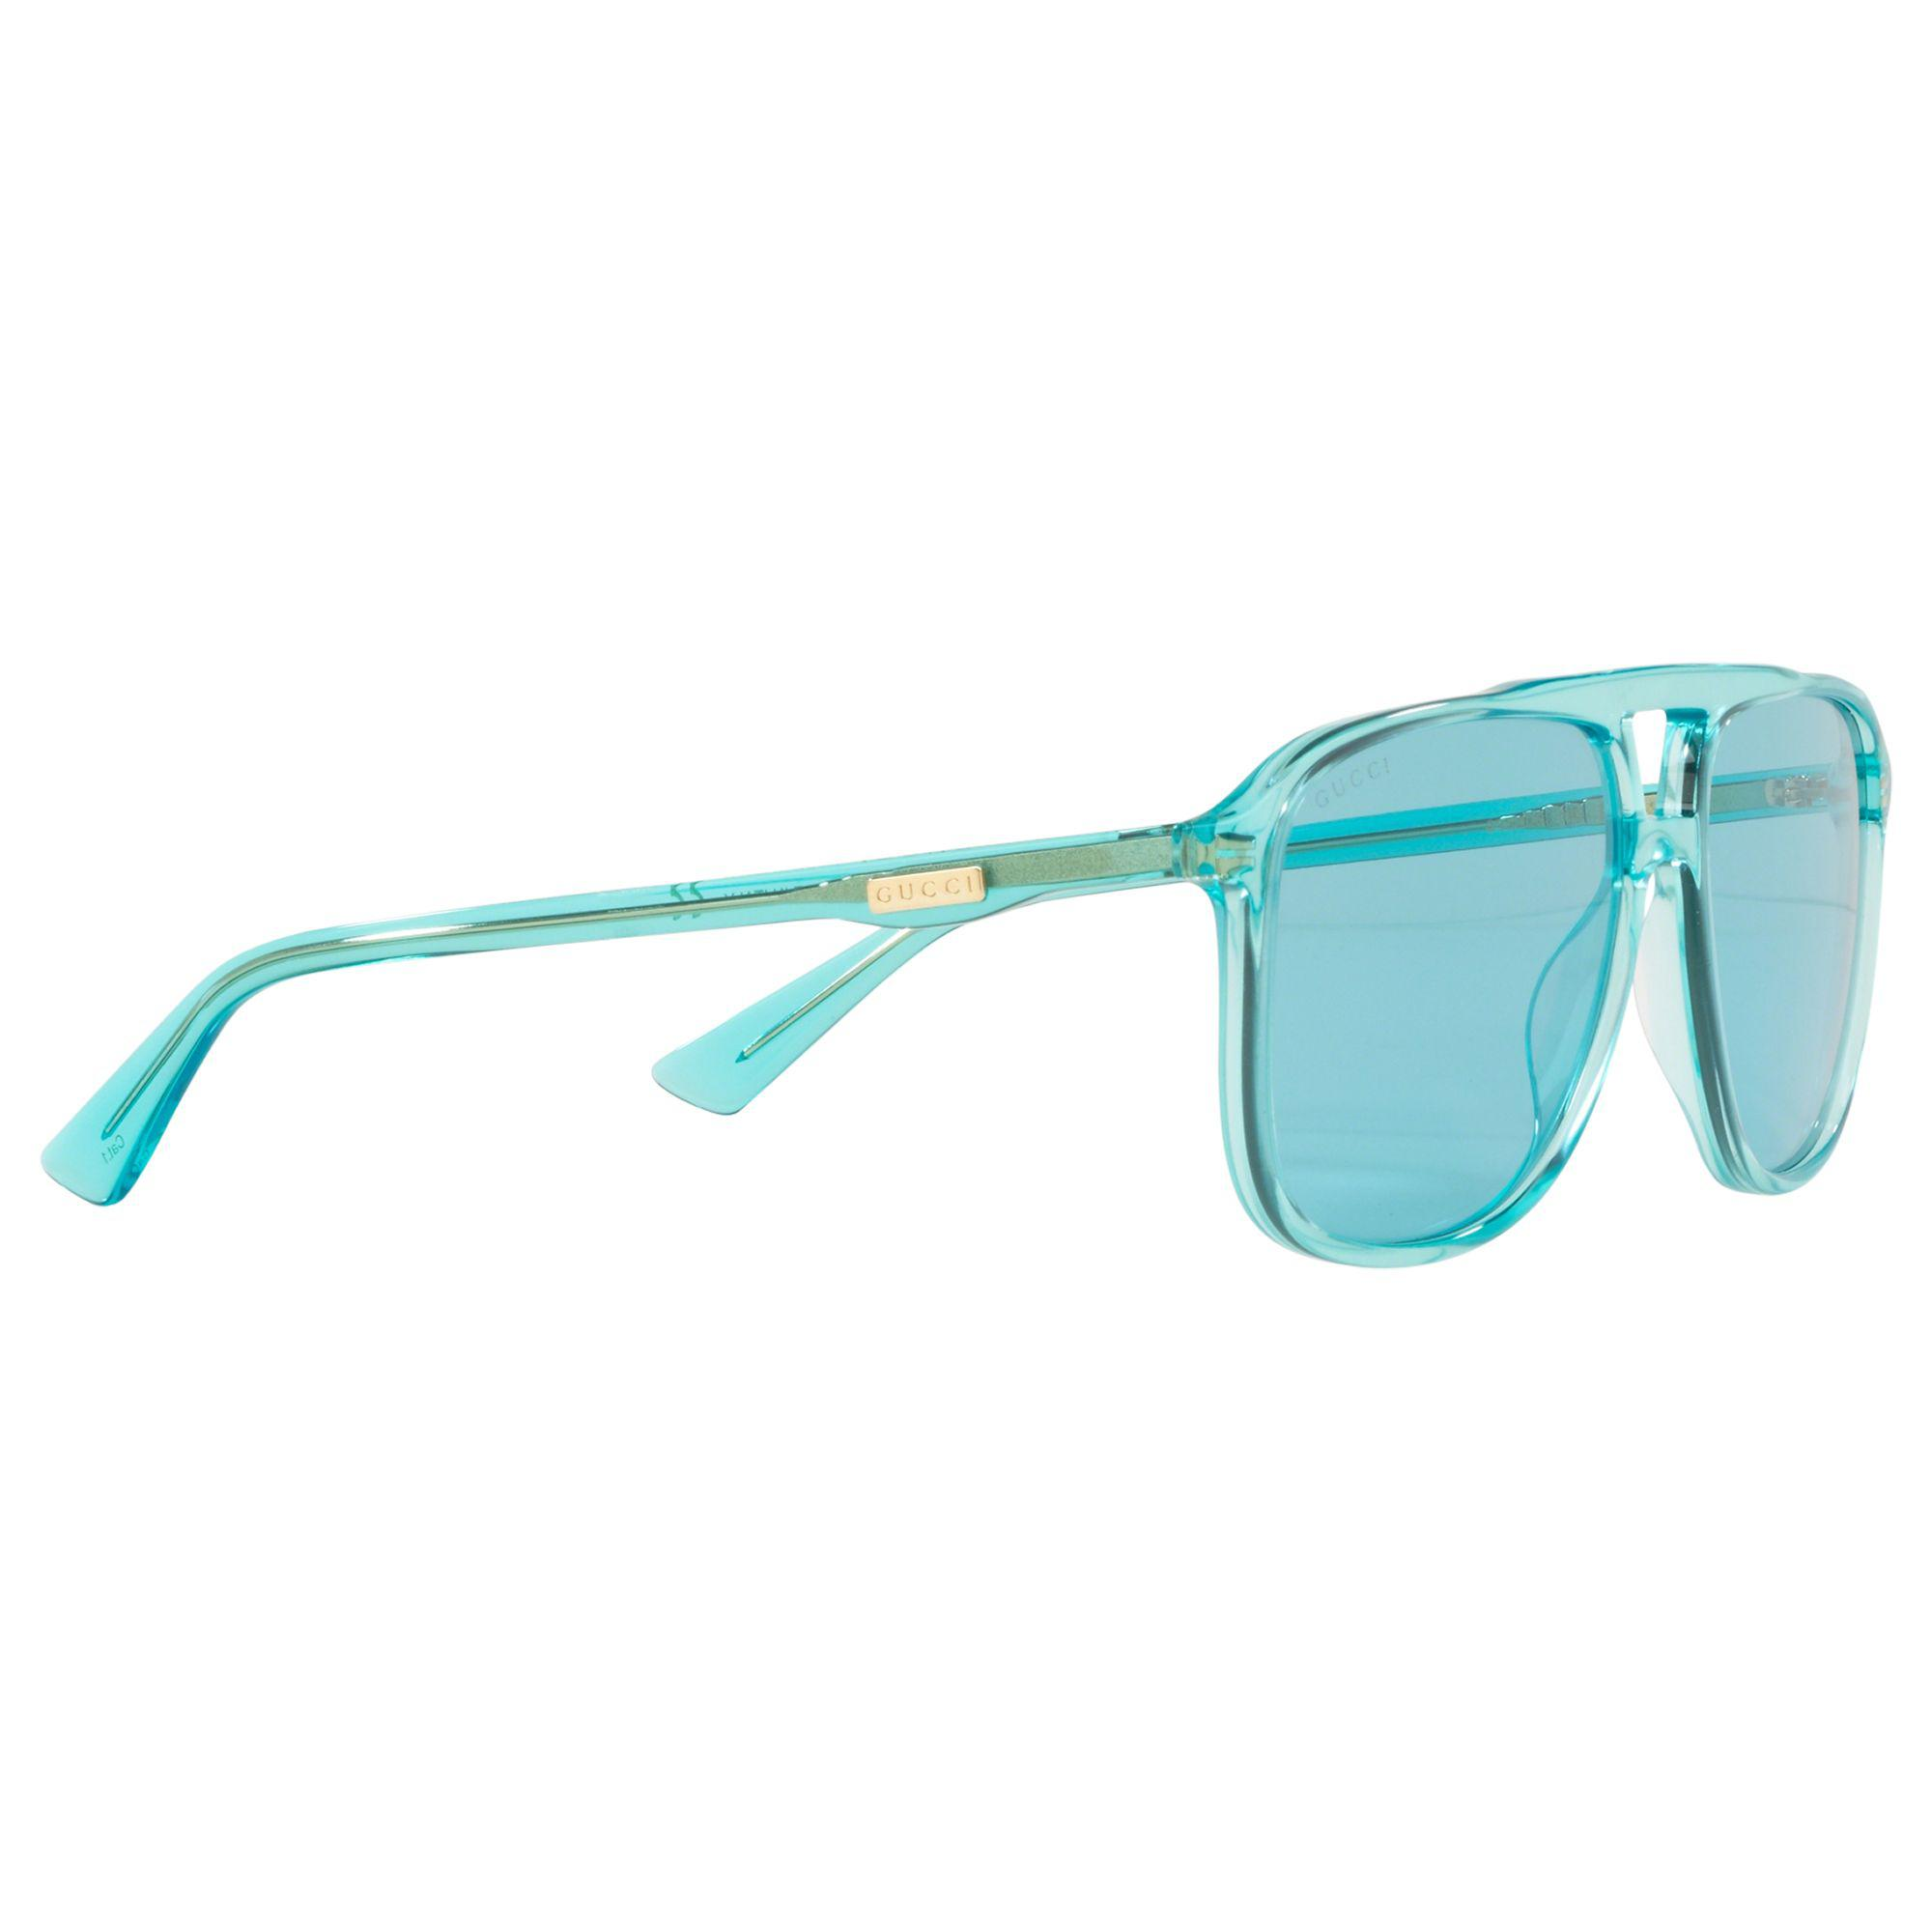 8f446d0f62e Gucci GG0262 Women s Square Sunglasses in Blue - Lyst